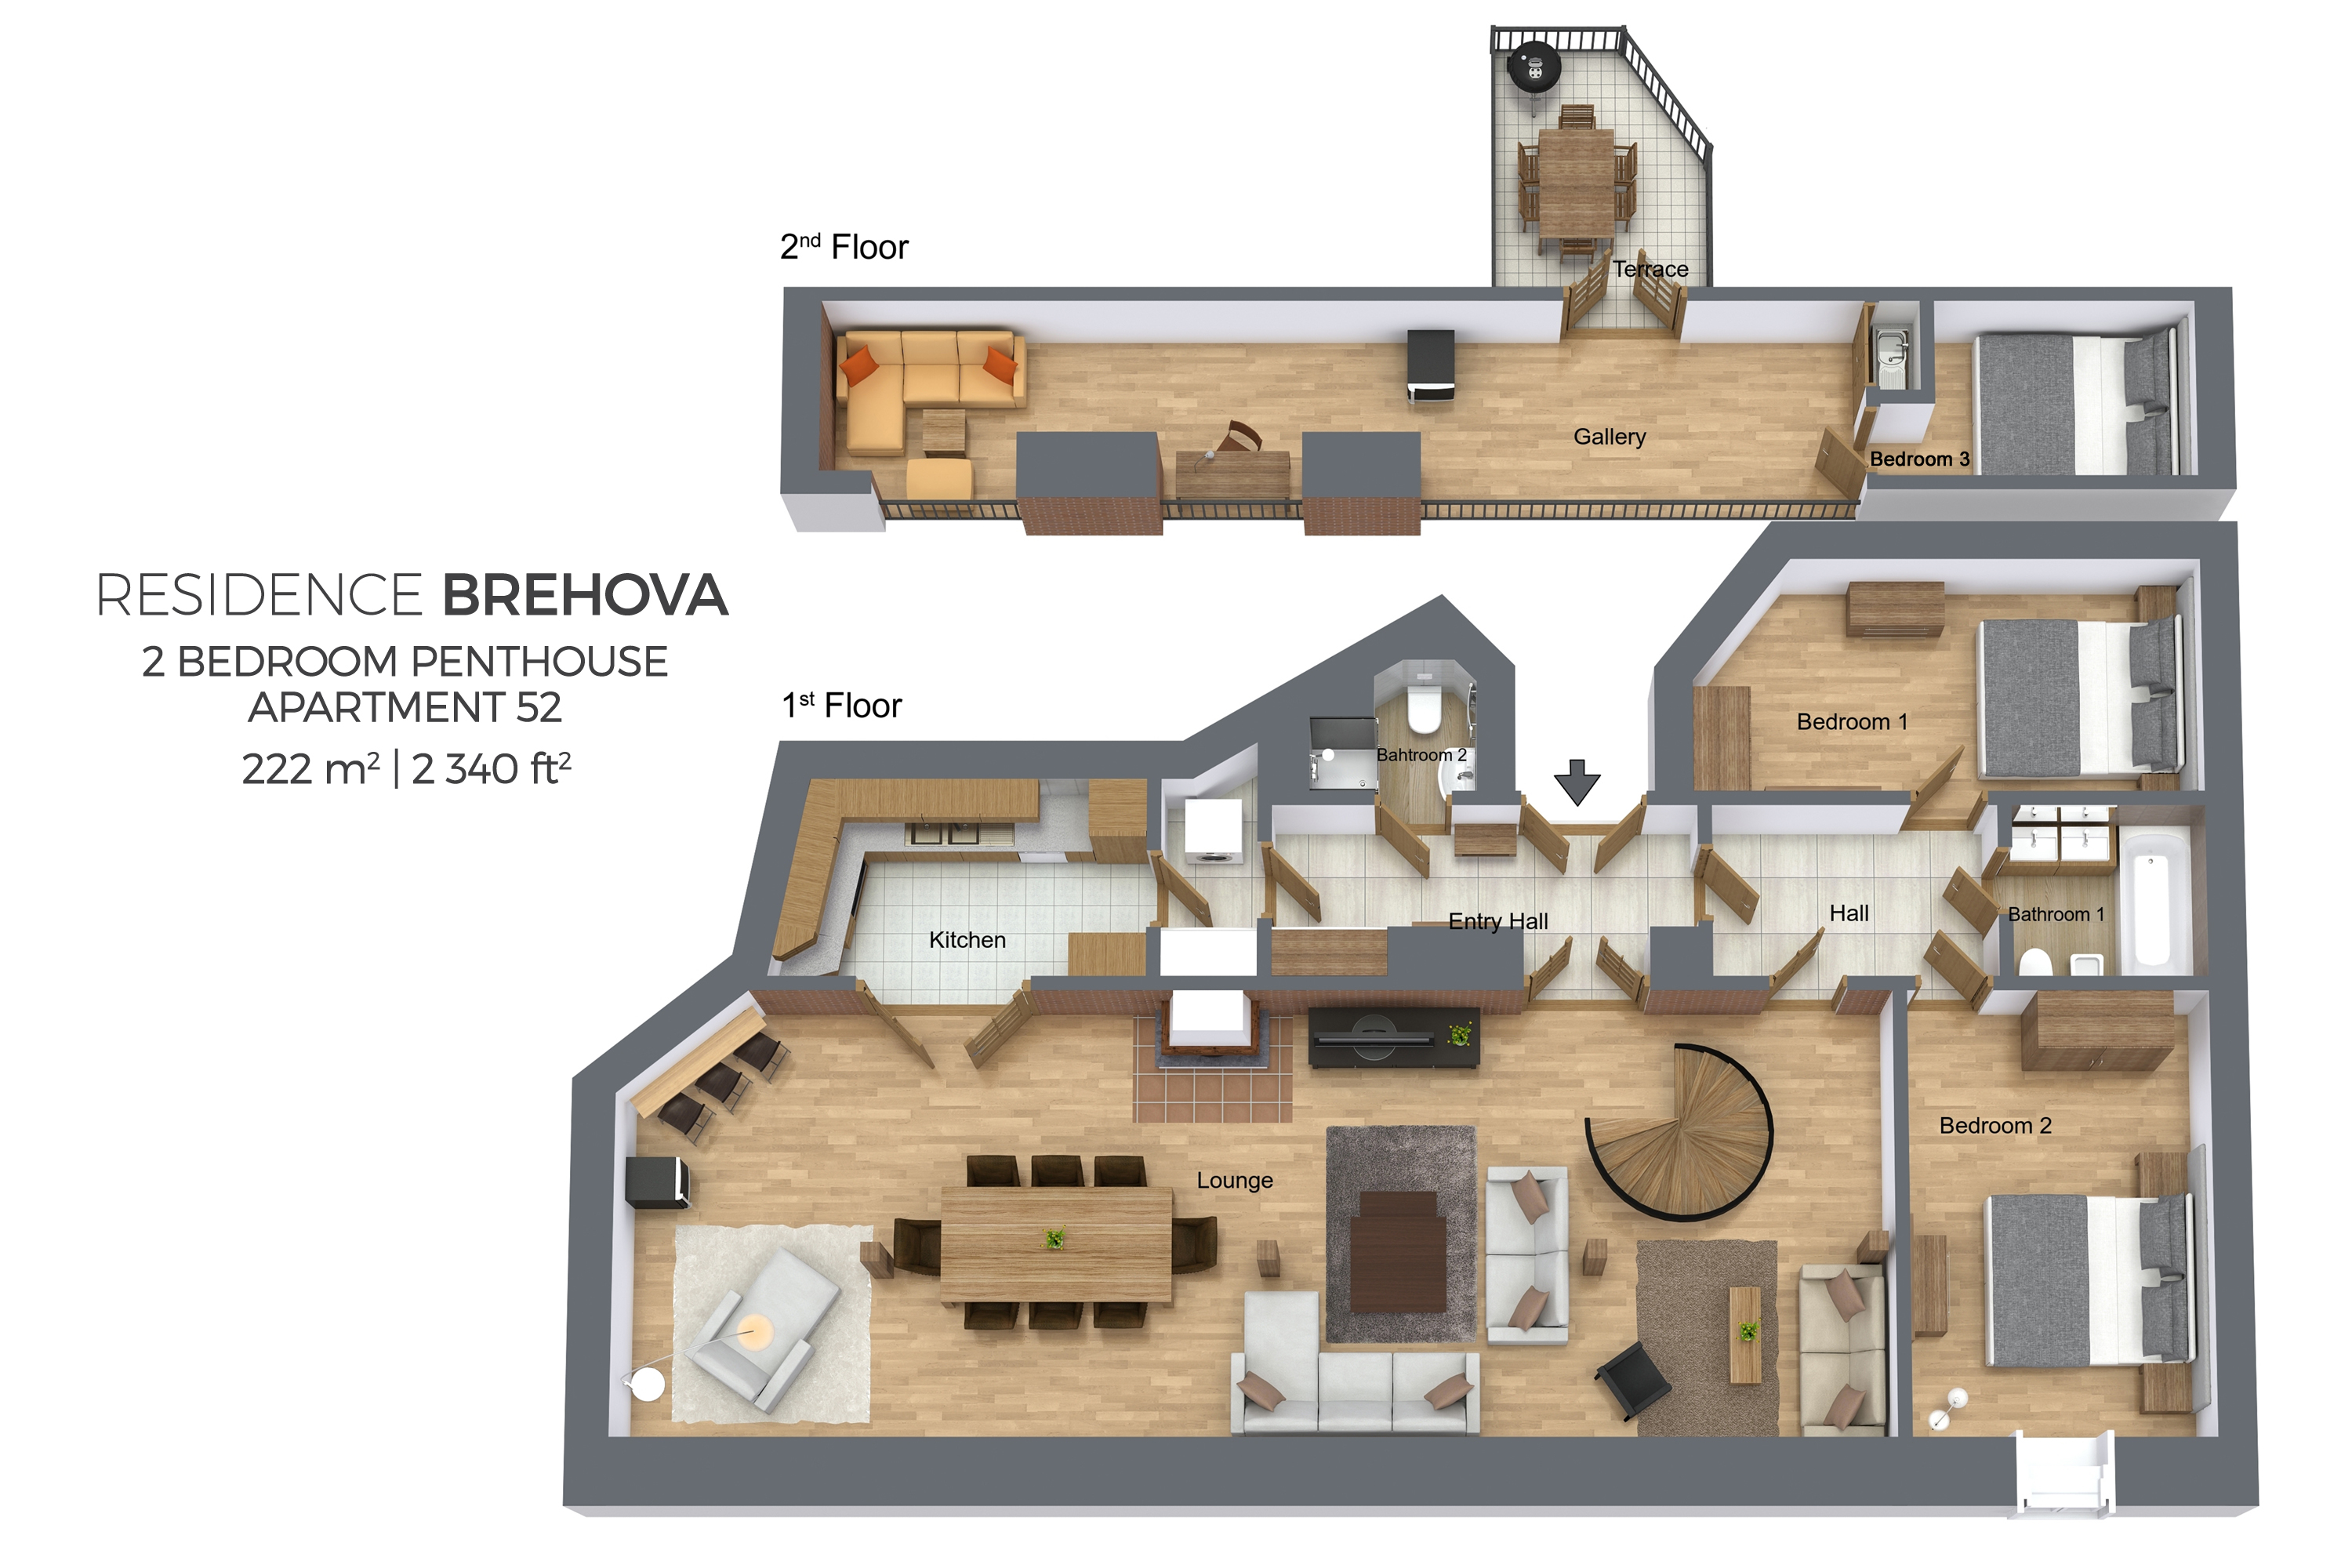 Pethouse floor plan at esidence Brehova Apartments